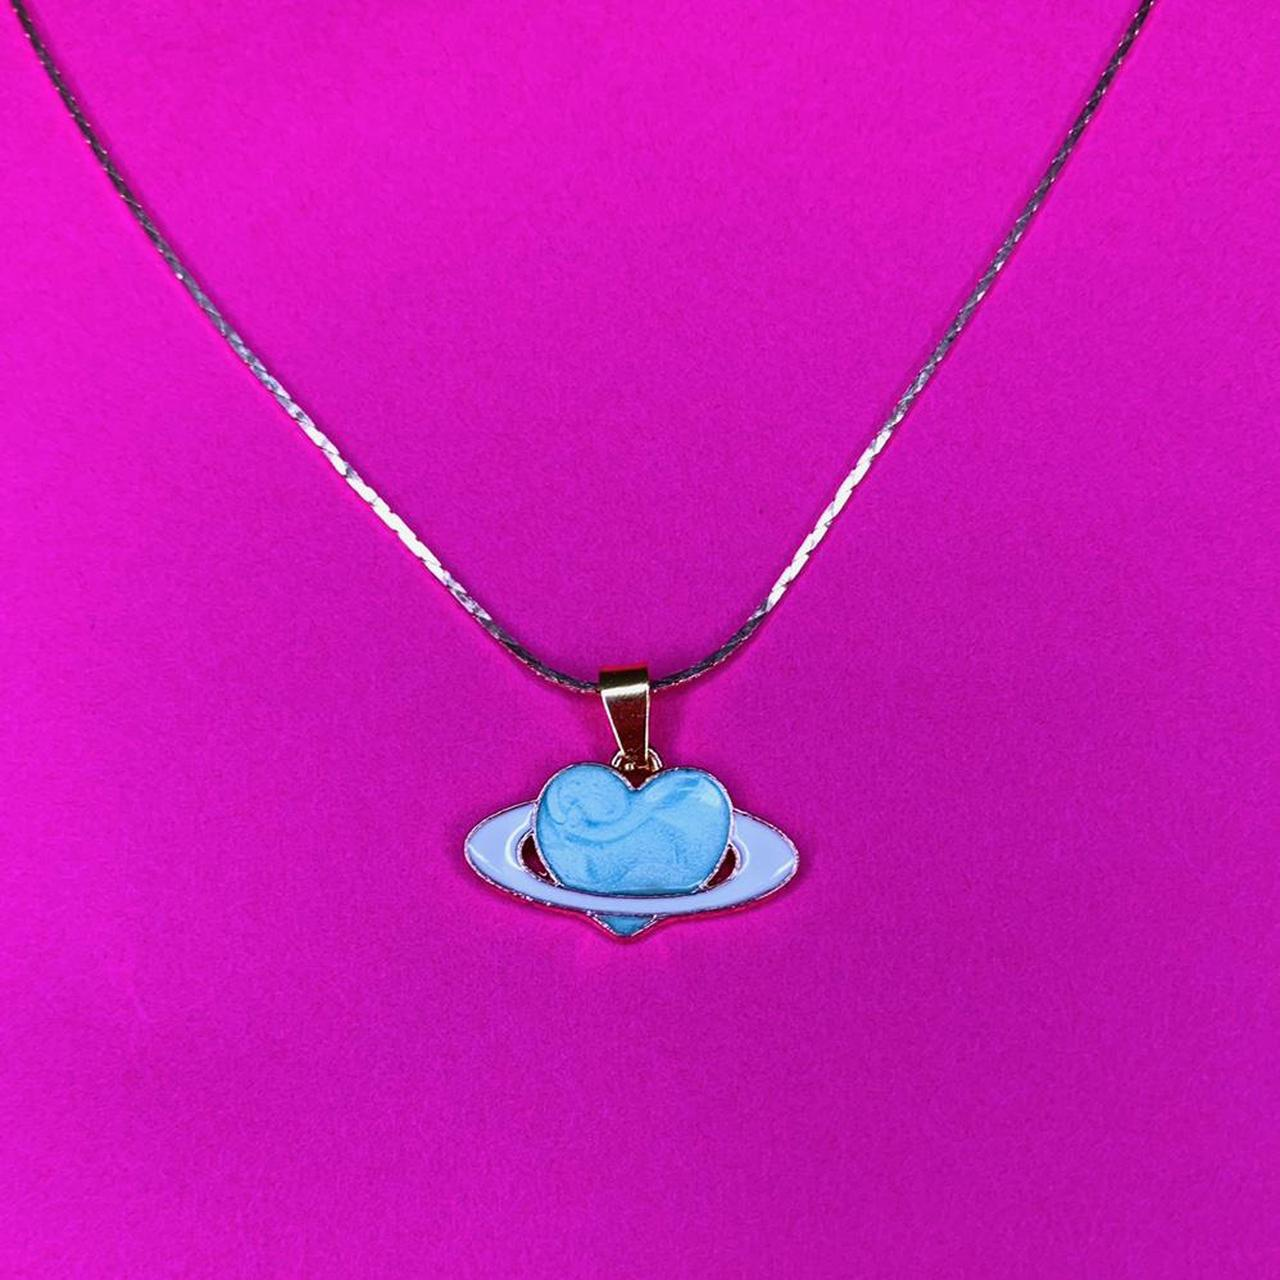 Product Image 1 - SATURN HEART NECKLACE. Gold chain